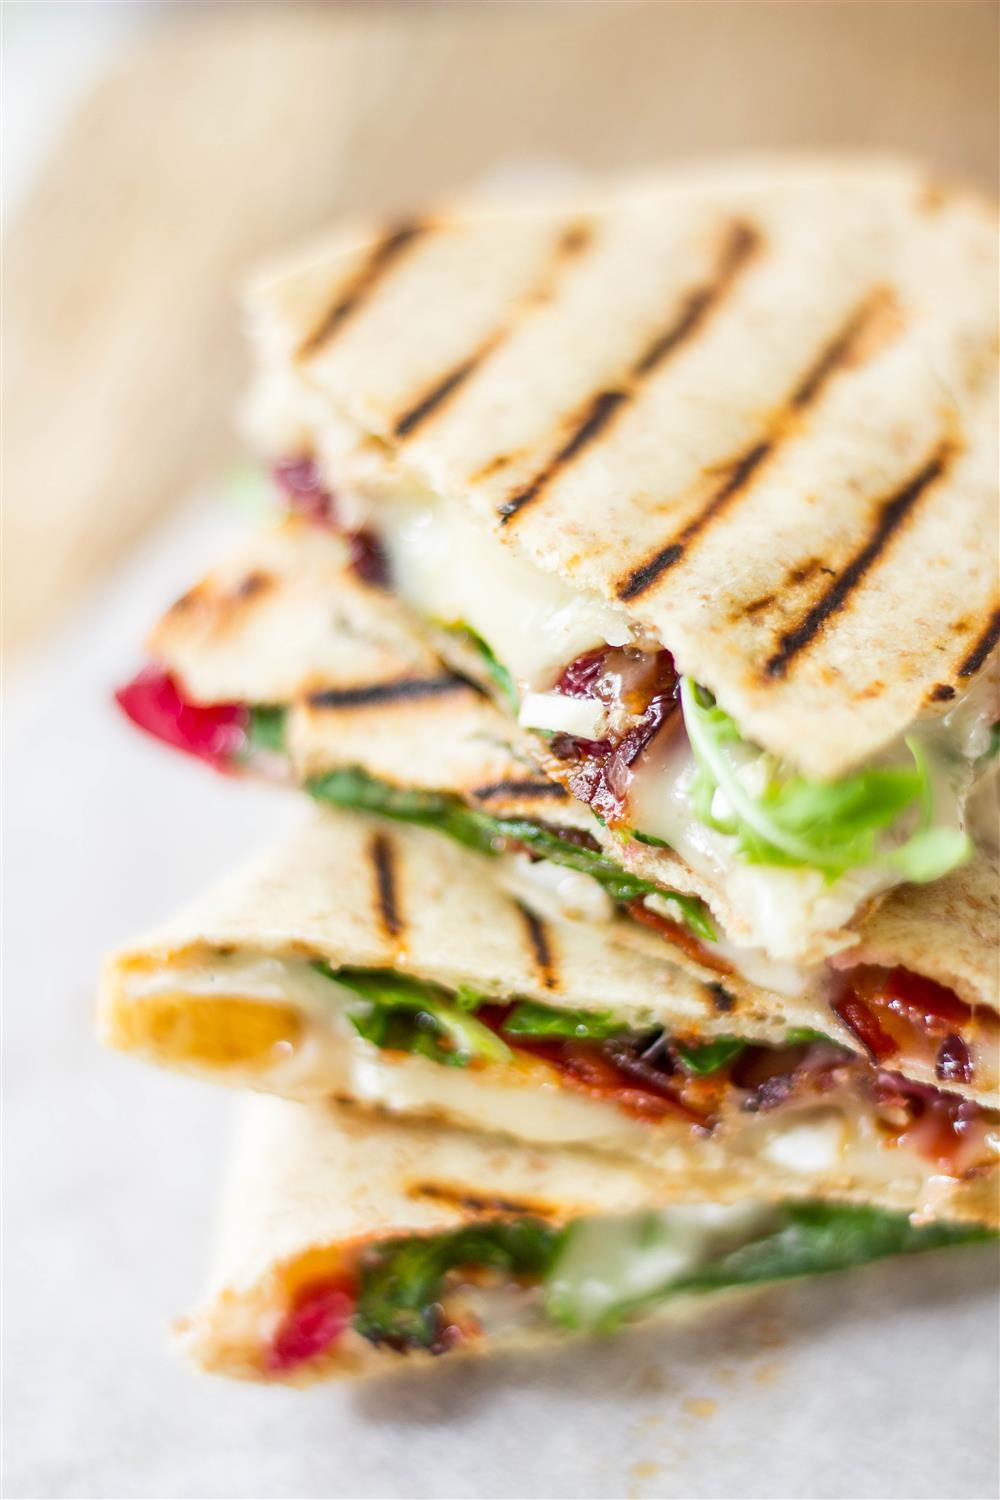 Use Your Noodles - Cherry, Brie & Bacon Grilled Quesadilla